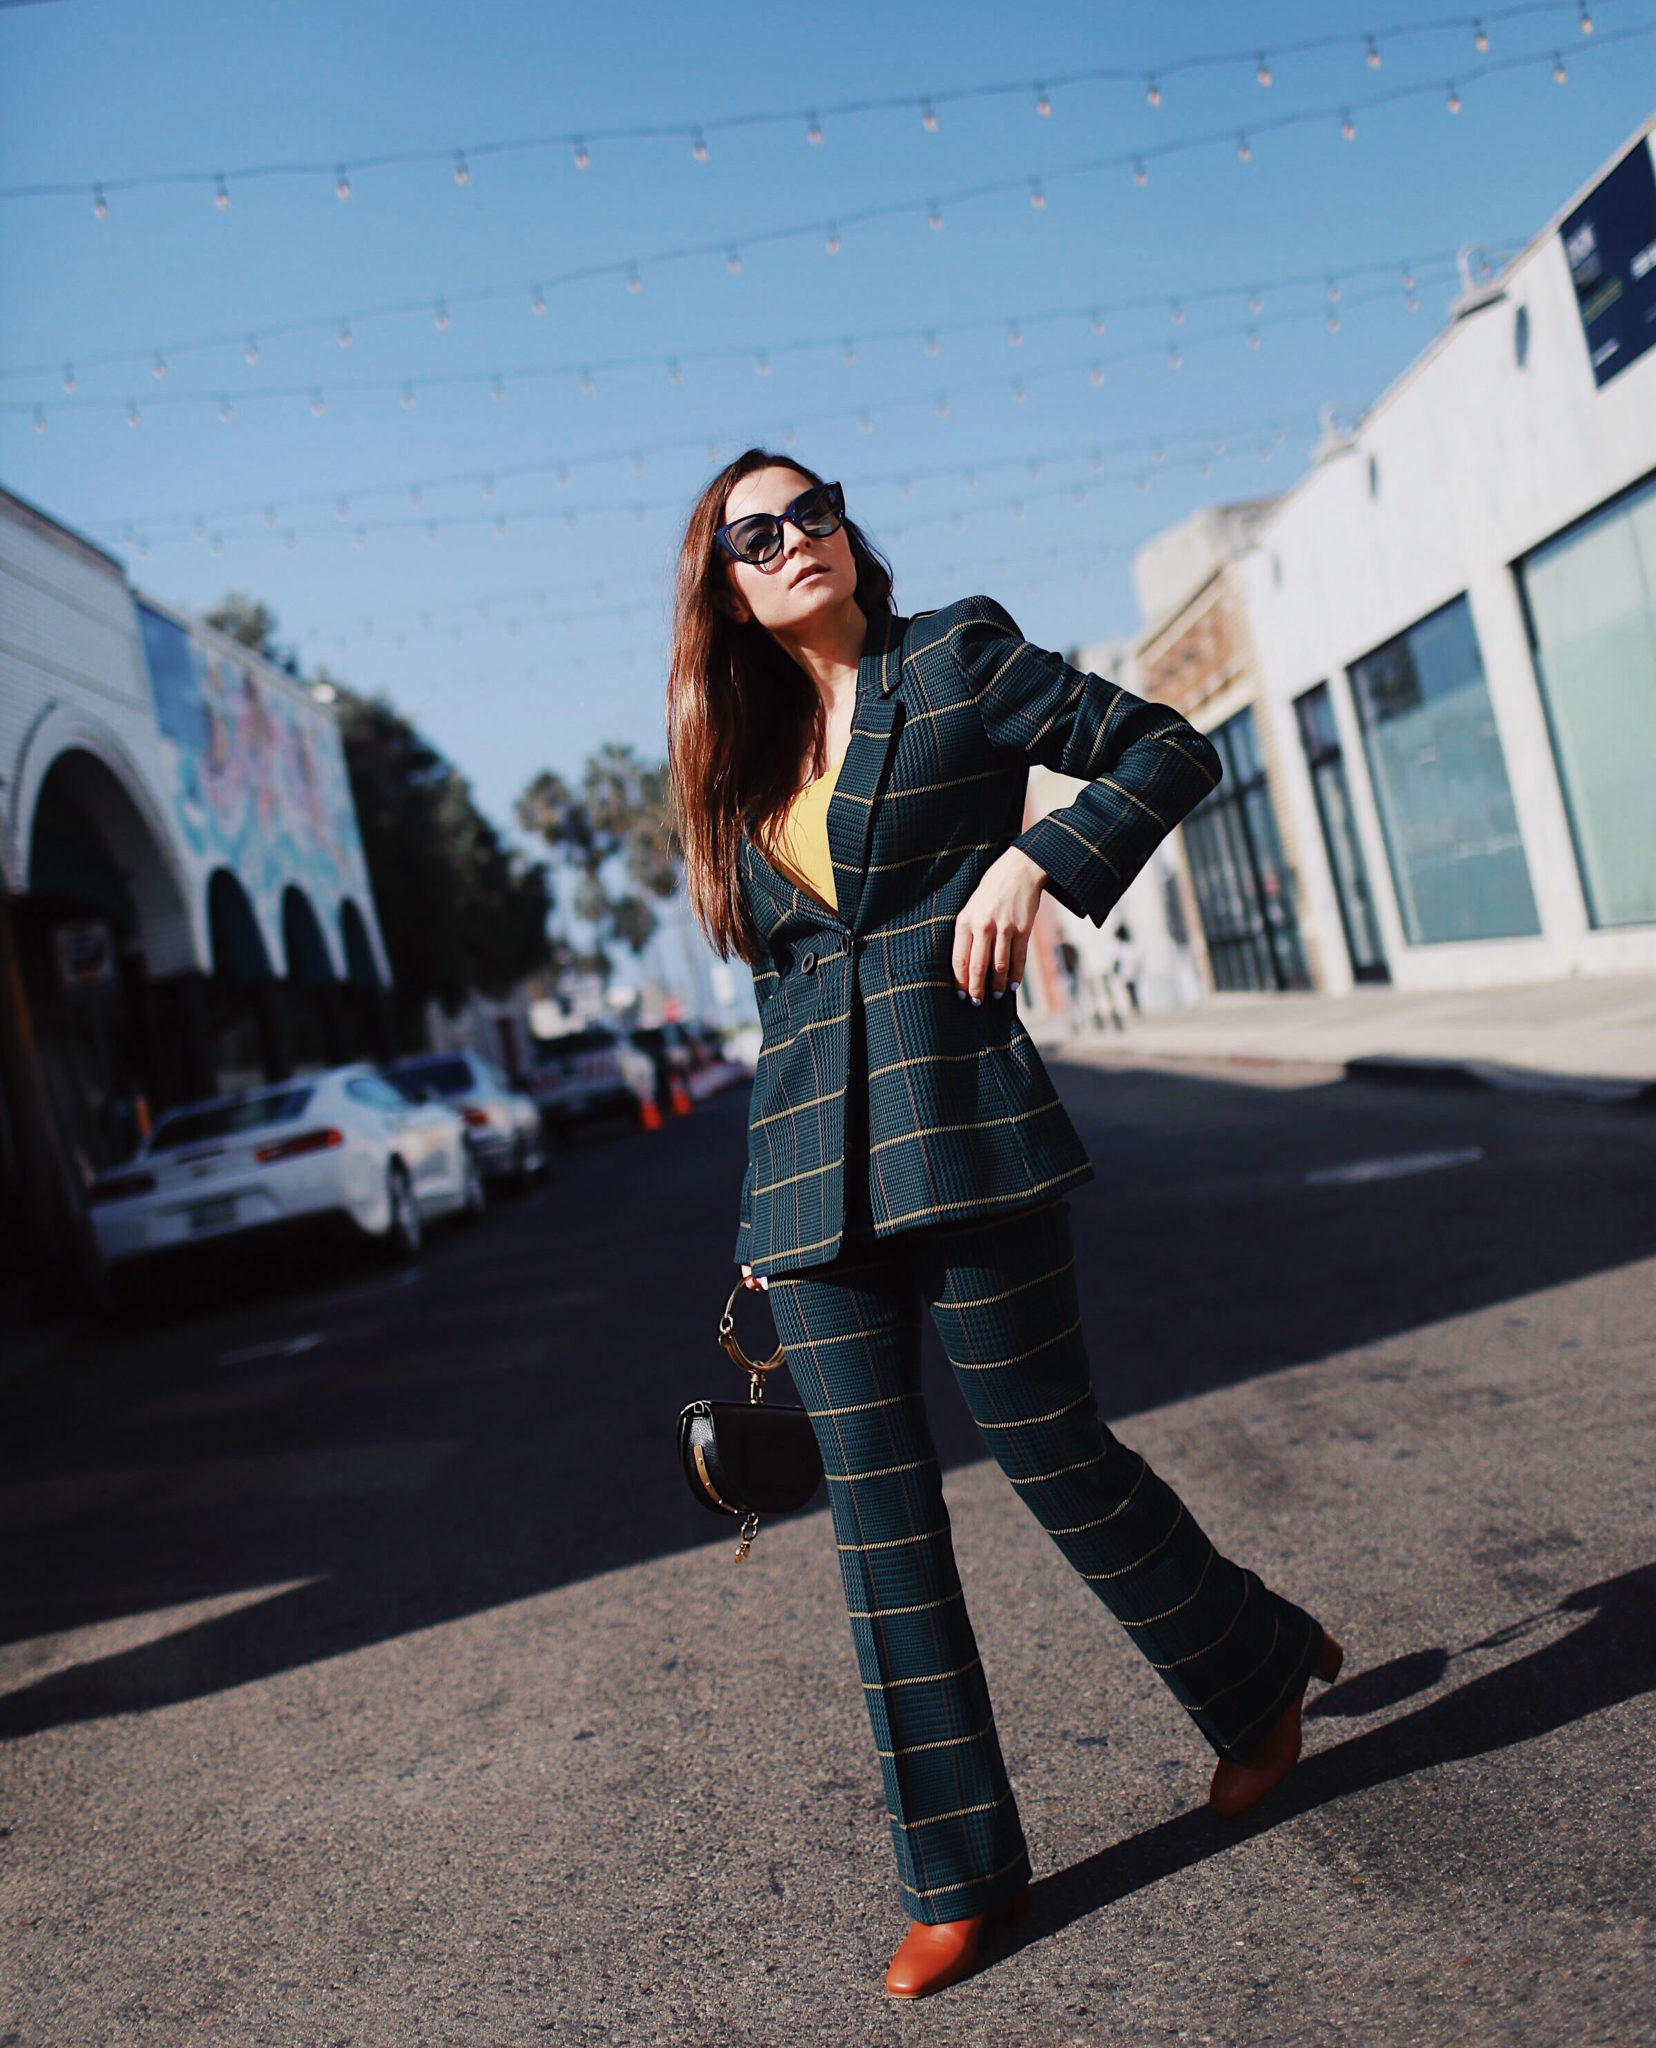 The plaid blazer: Fall must-have piece to wear on repeat. Wearing a plaid blazer by Anine Bing - Fall 2018. More on Houseofcomil.com. Blog by @juliacomil French fashion blogger